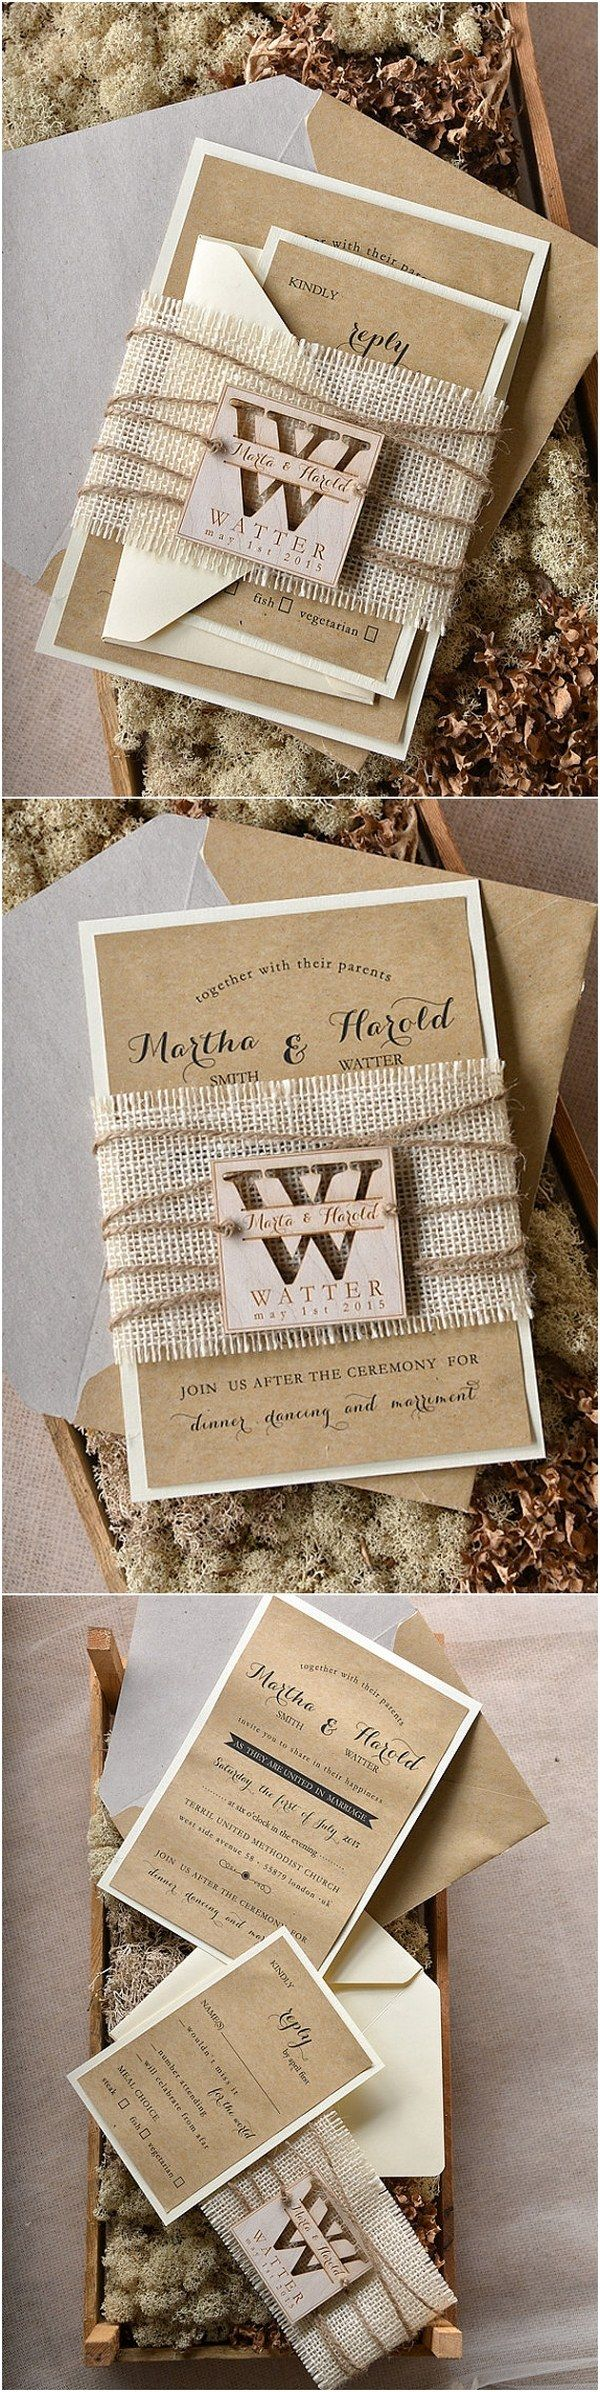 rustic country burlap wedding invitations 4LOVEPolkaDots rusticwedding countryweding weddingideas